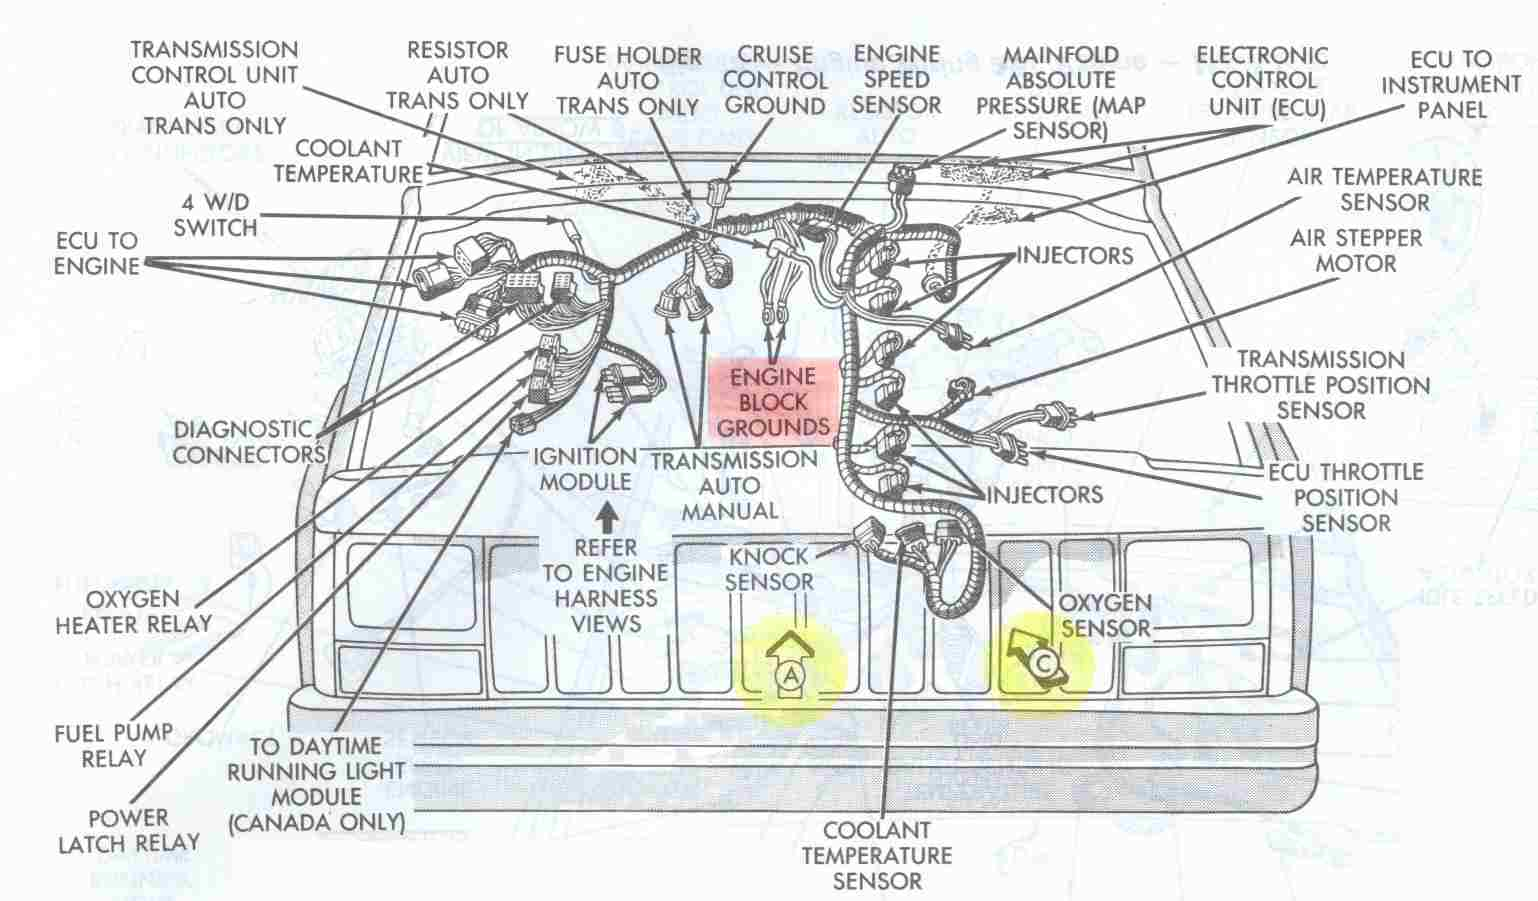 1998 Jeep Grand Cherokee Wiring Harness - Wiring Diagram ... Jeep Grand Cherokee Trailer Wiring Diagram on